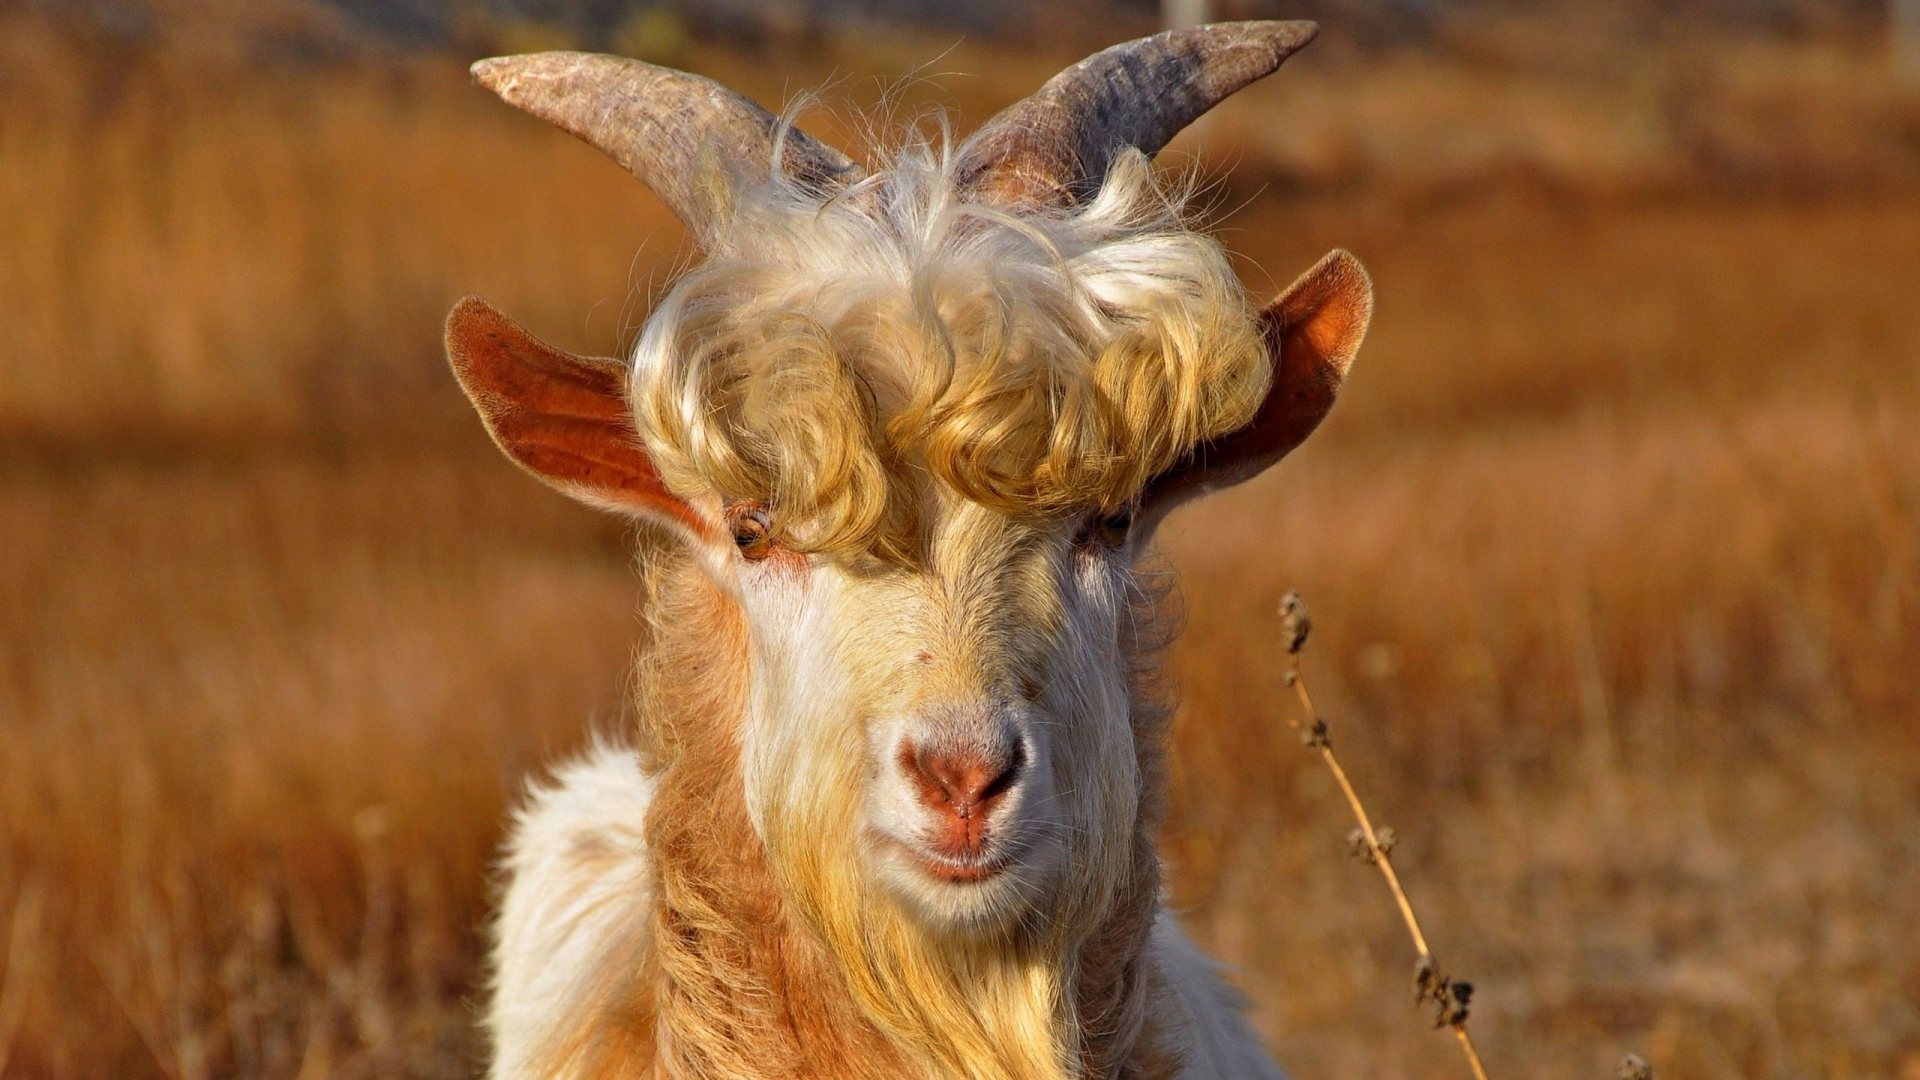 goats hair Goatee refers to a style of facial hair incorporating hair on a man's chin, so named because of some similarity to a goat's facial feature feral goats main article: feral goat.